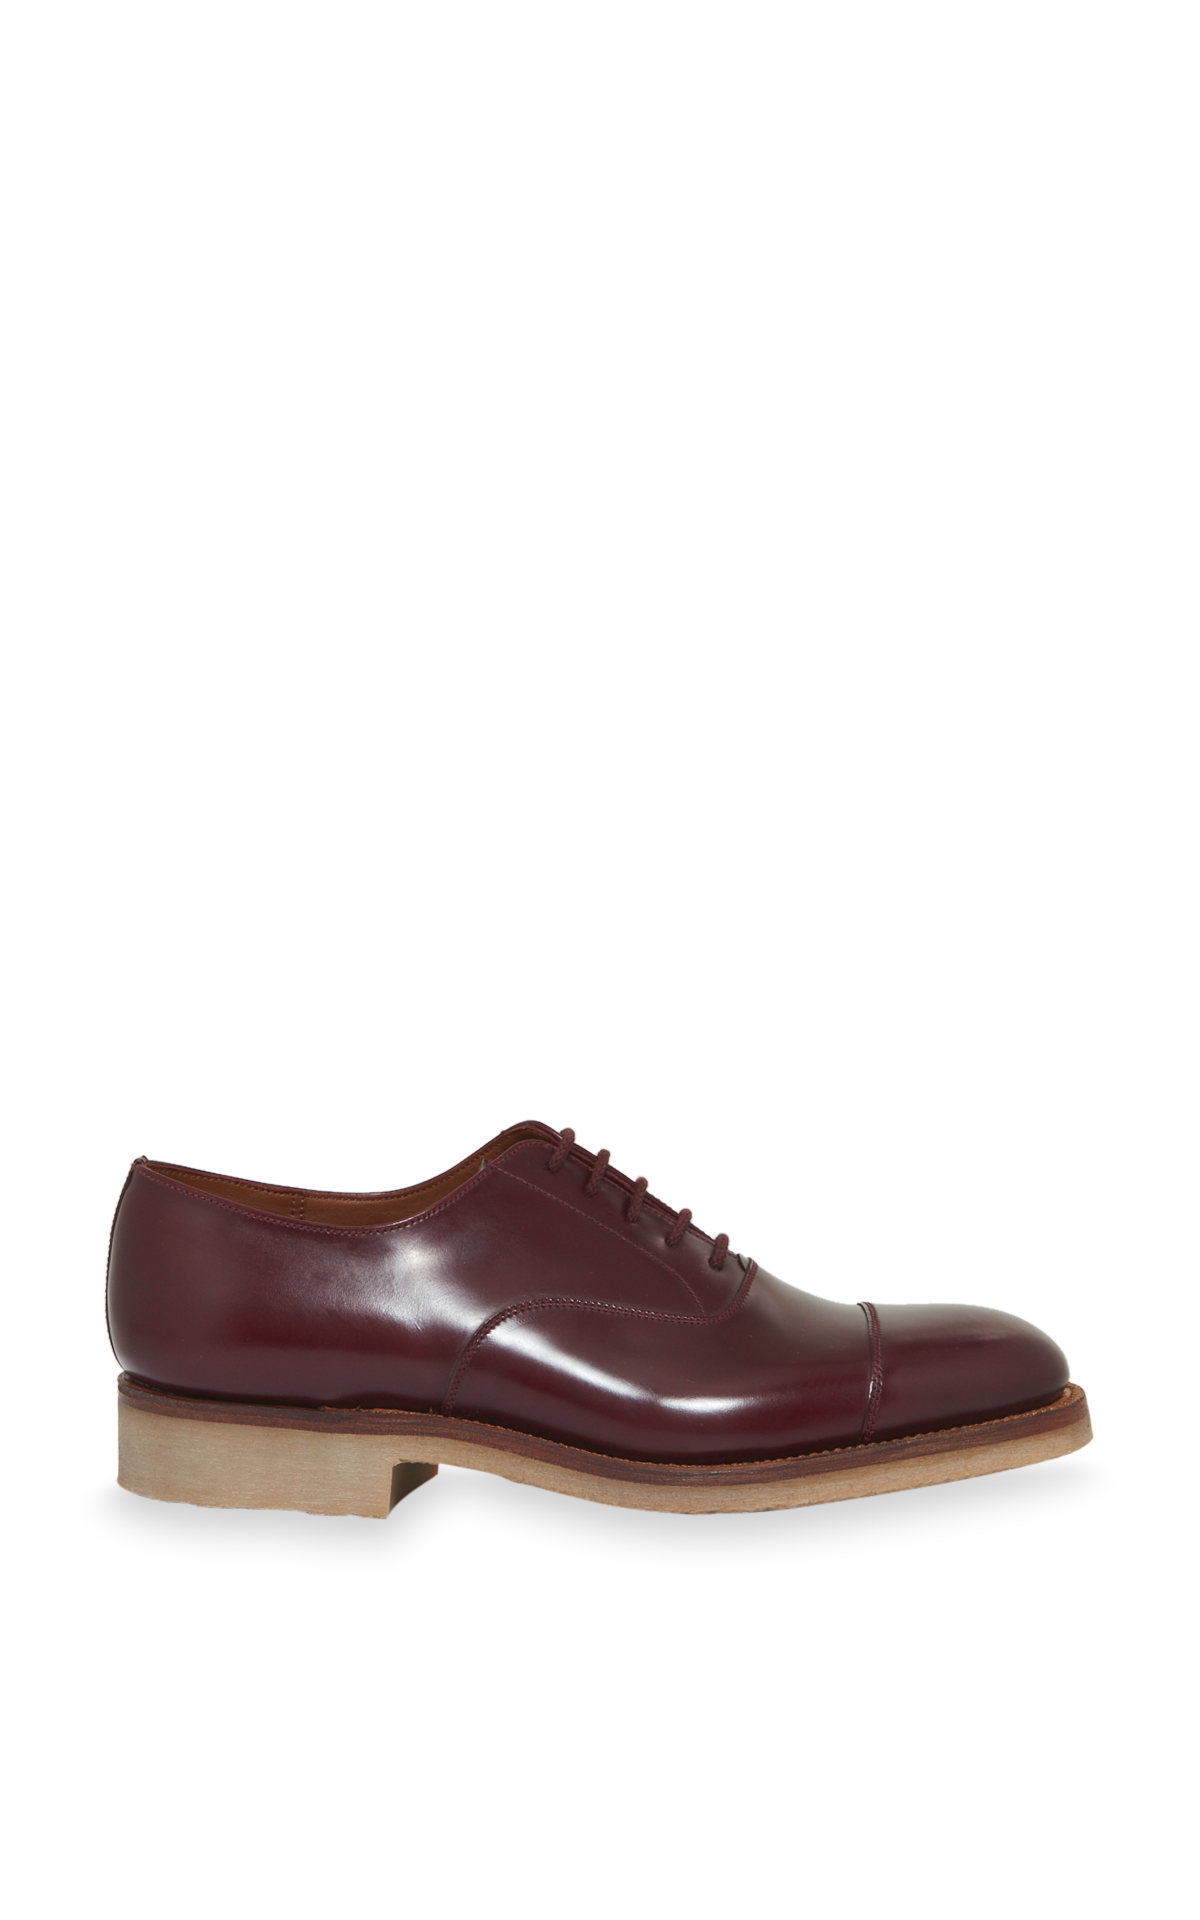 la vallée village J.M. Weston Burgundy Oxford shoes